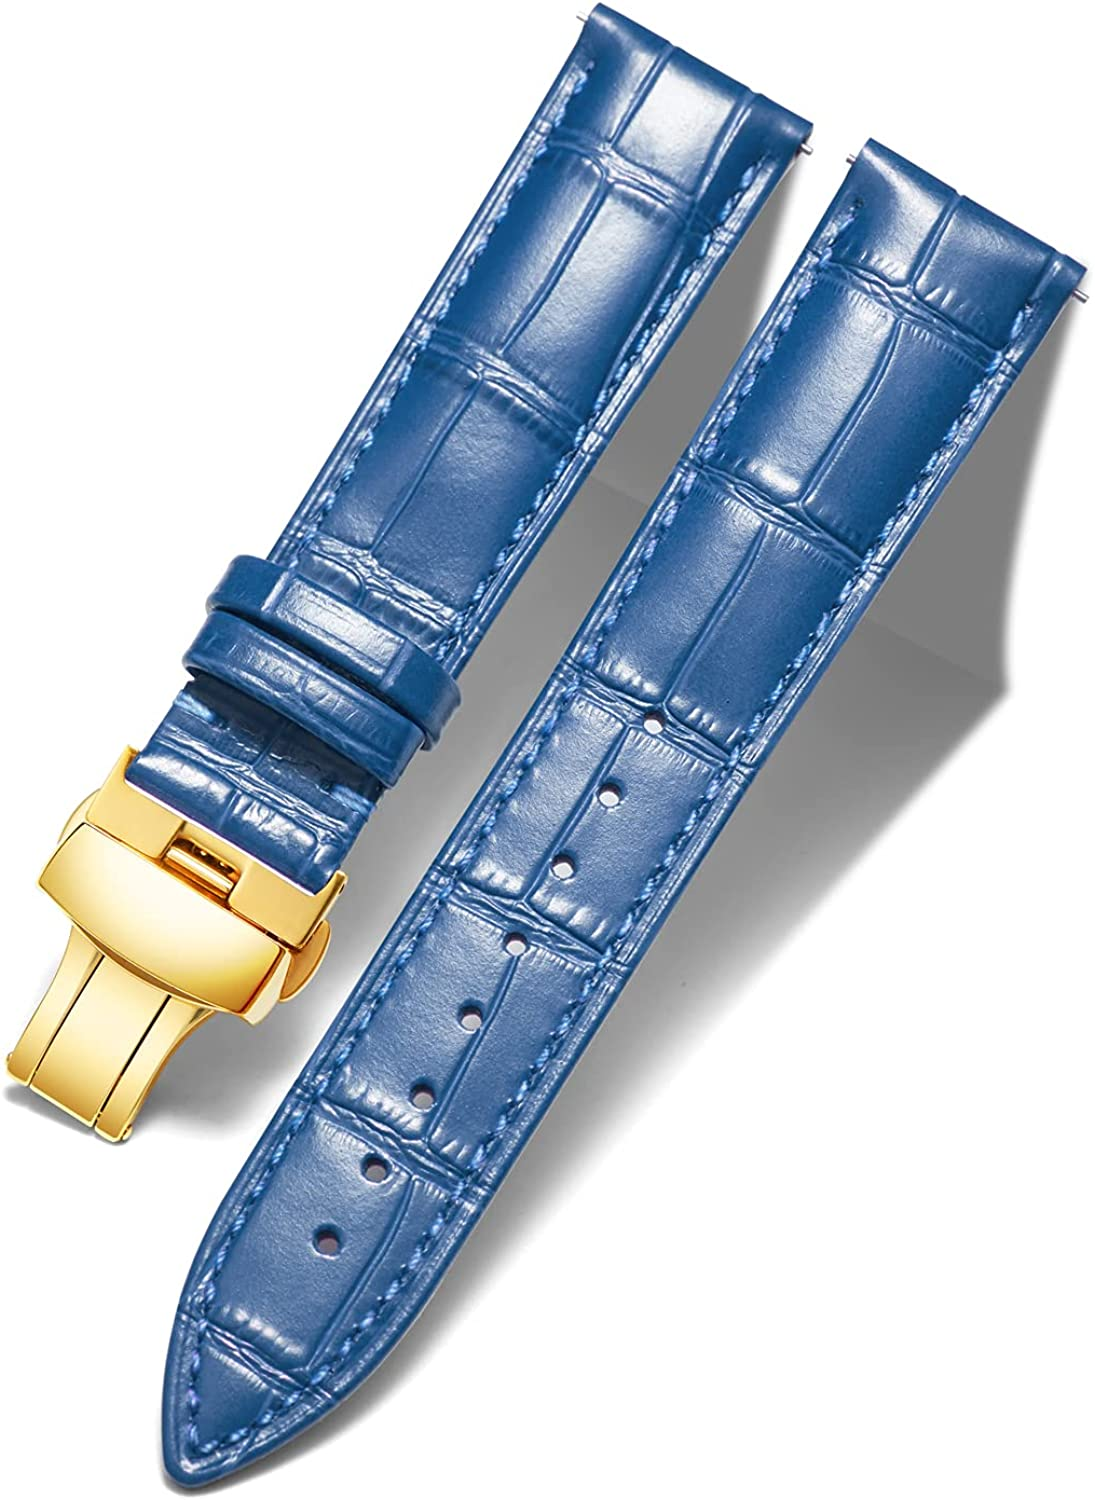 High quality new Genuine Calfskin Leather Watch Replacement Strap Cheap super special price Bands Alligator